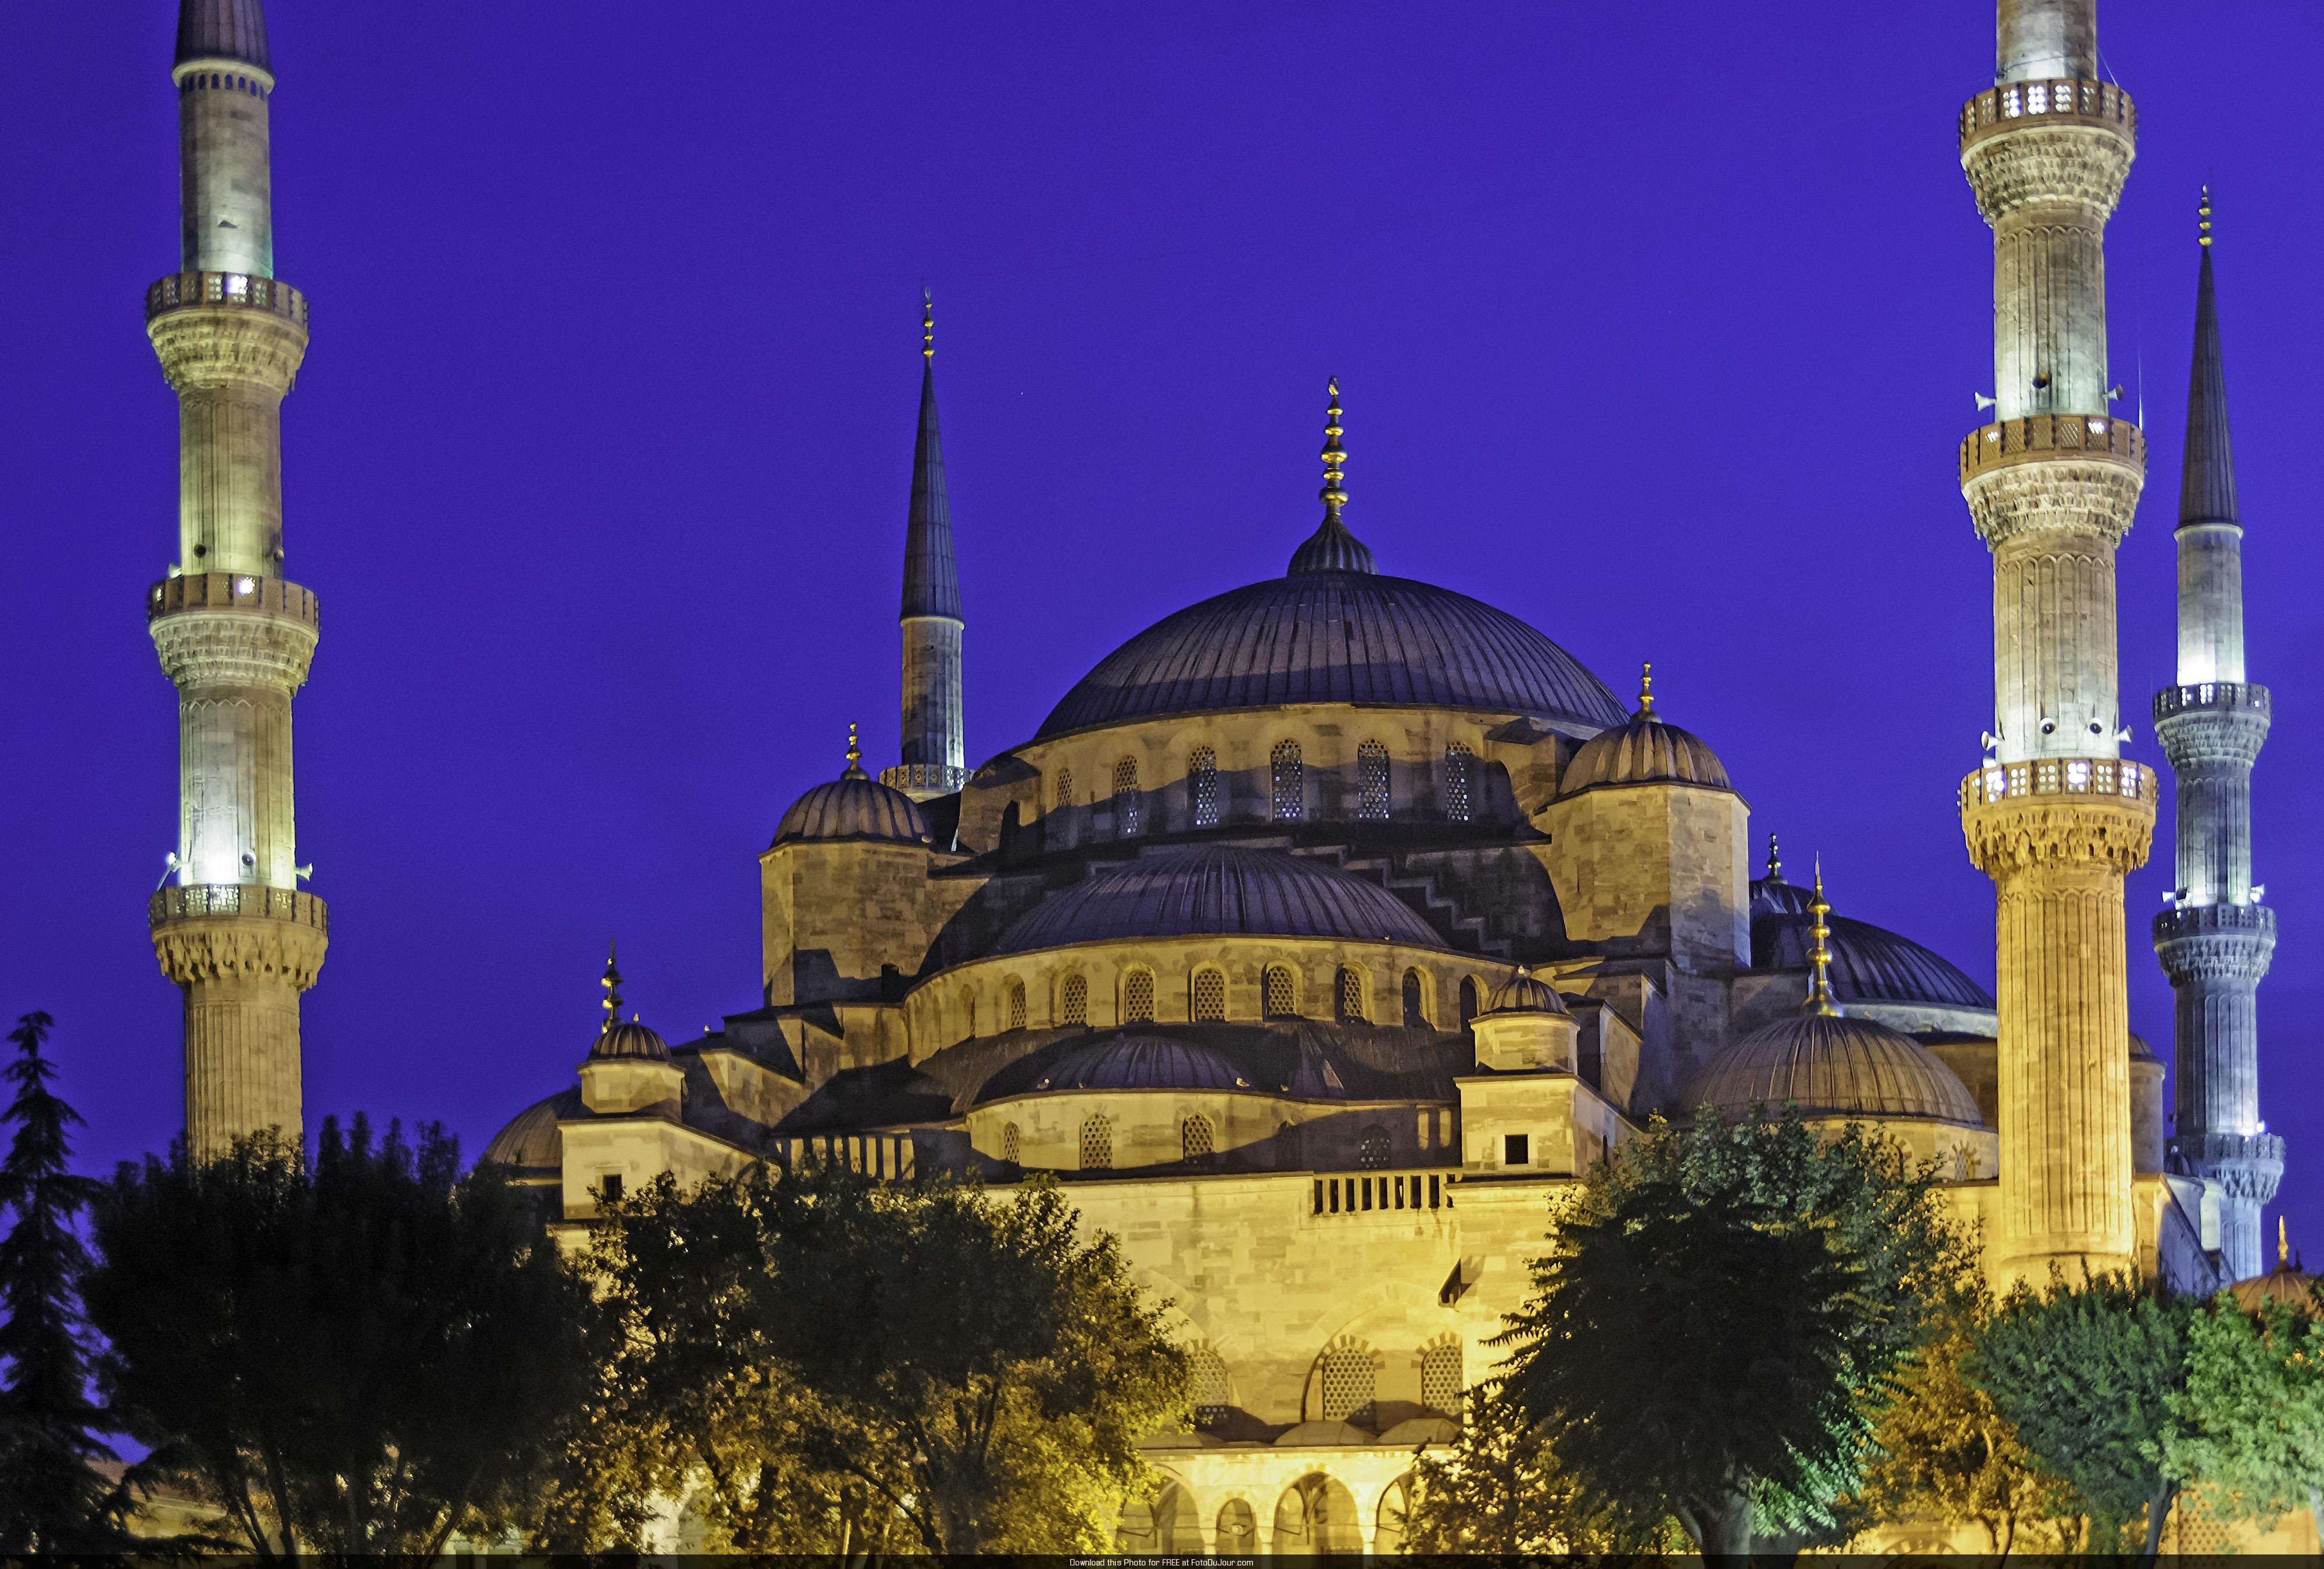 mosques in europe - Google Search | Blue mosque, Street ...